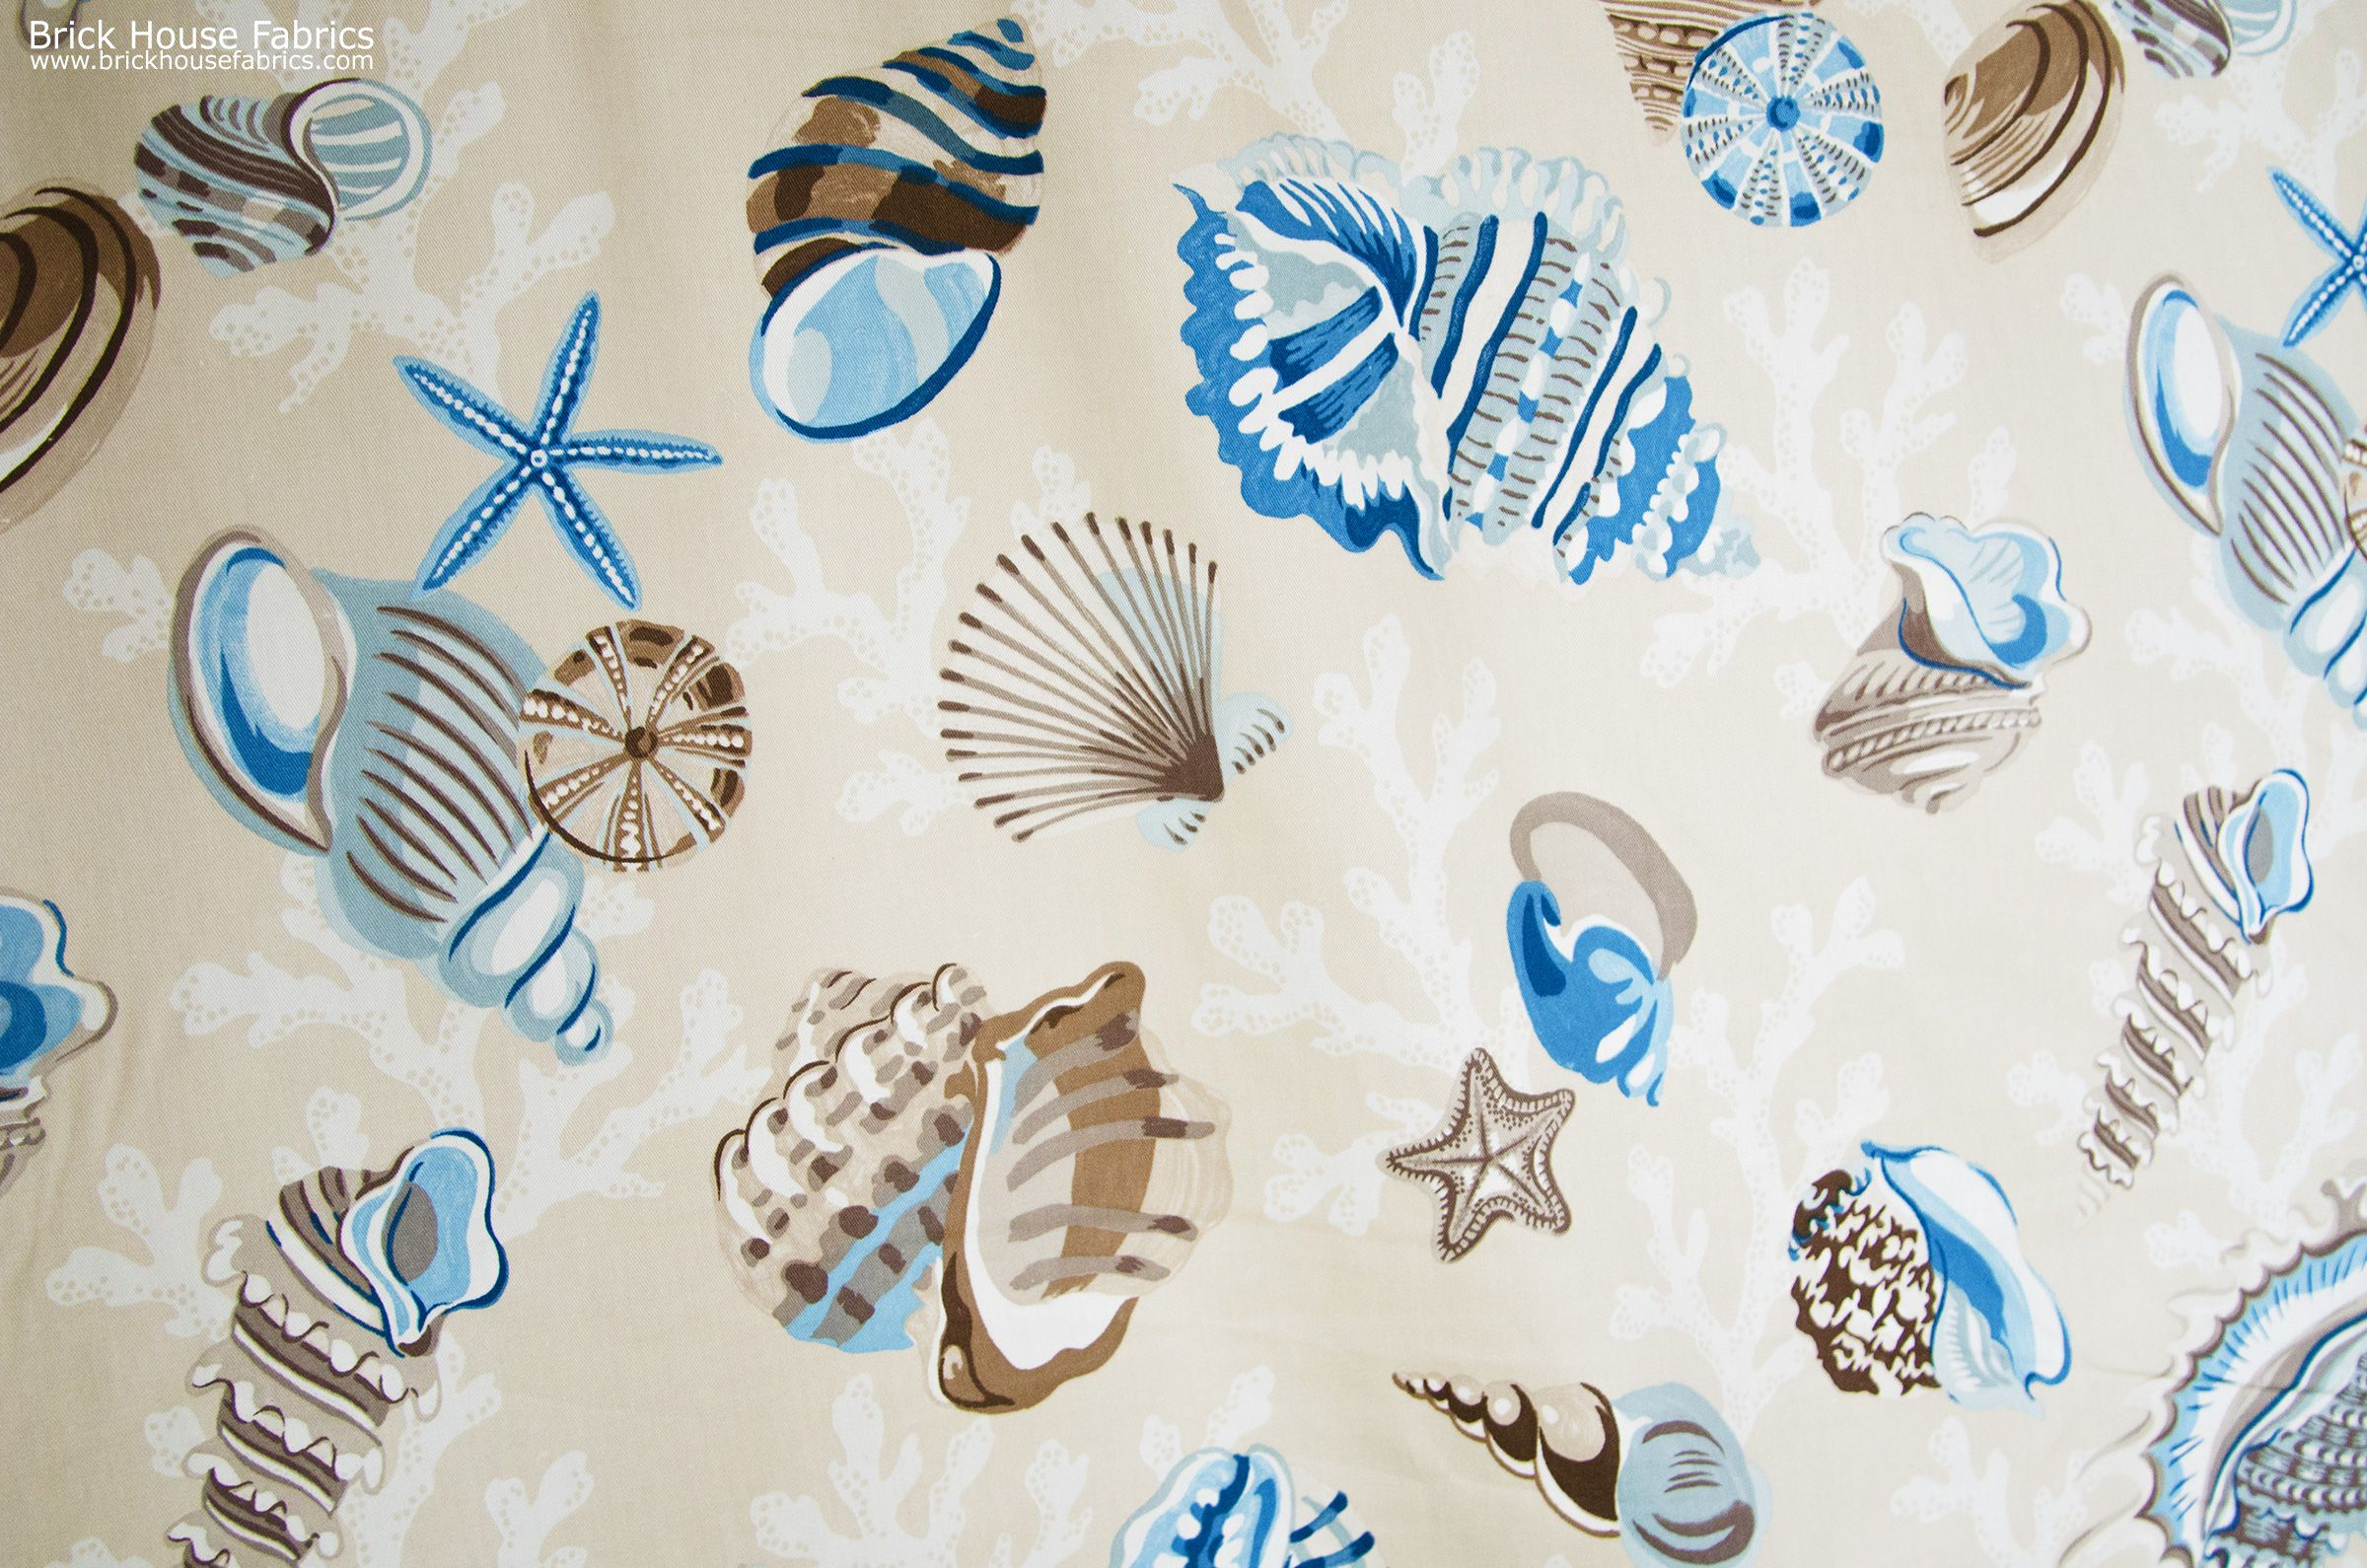 A seashell fabric with starfish, sea stars, and coral! A rather funky seashell…